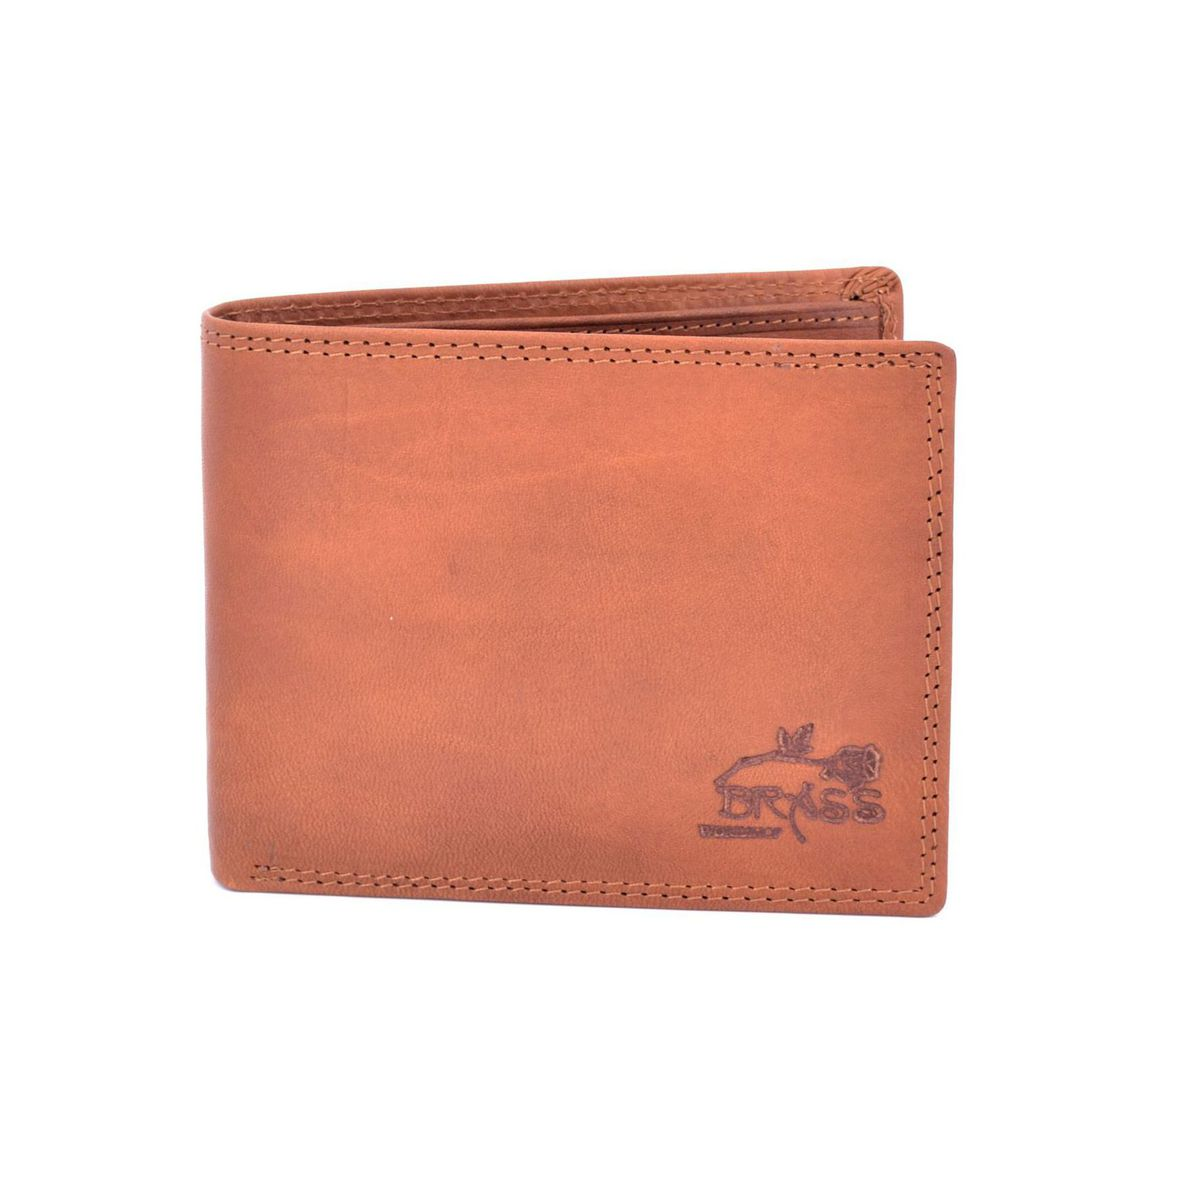 Double stitched leather wallet Brown BRASS Workshop